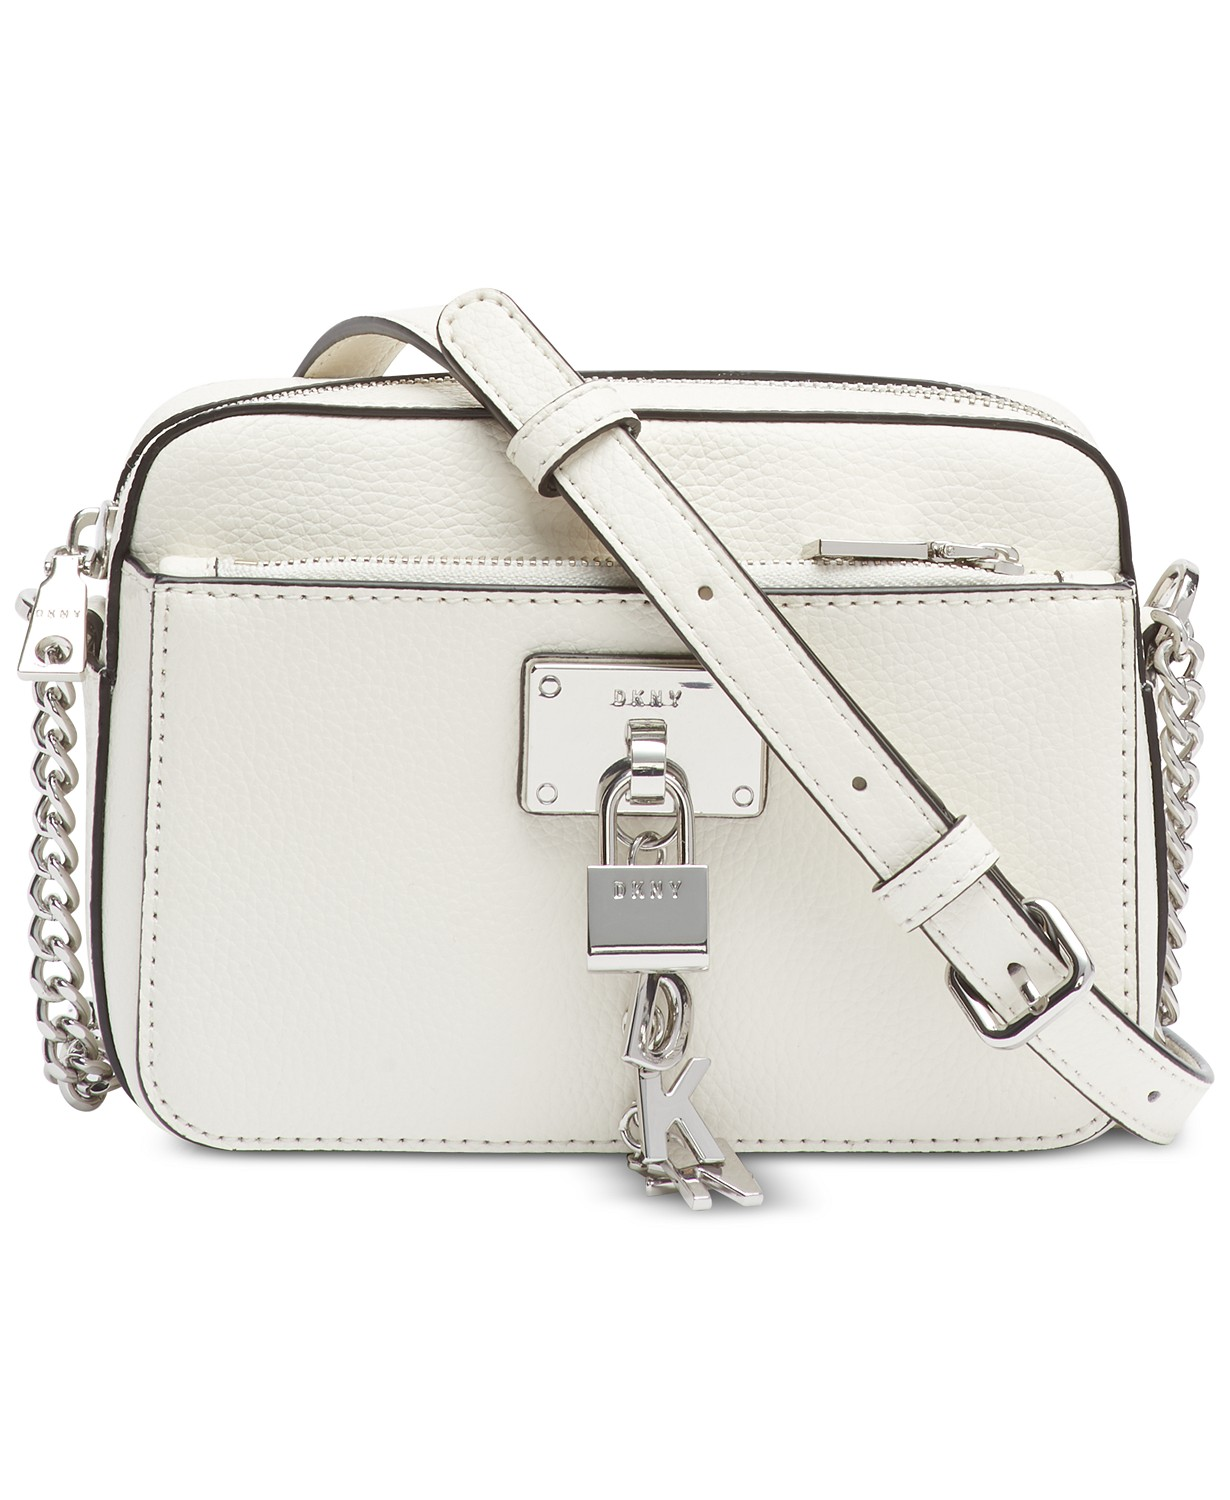 DKNY Elissa Pebble Leather Crossbody